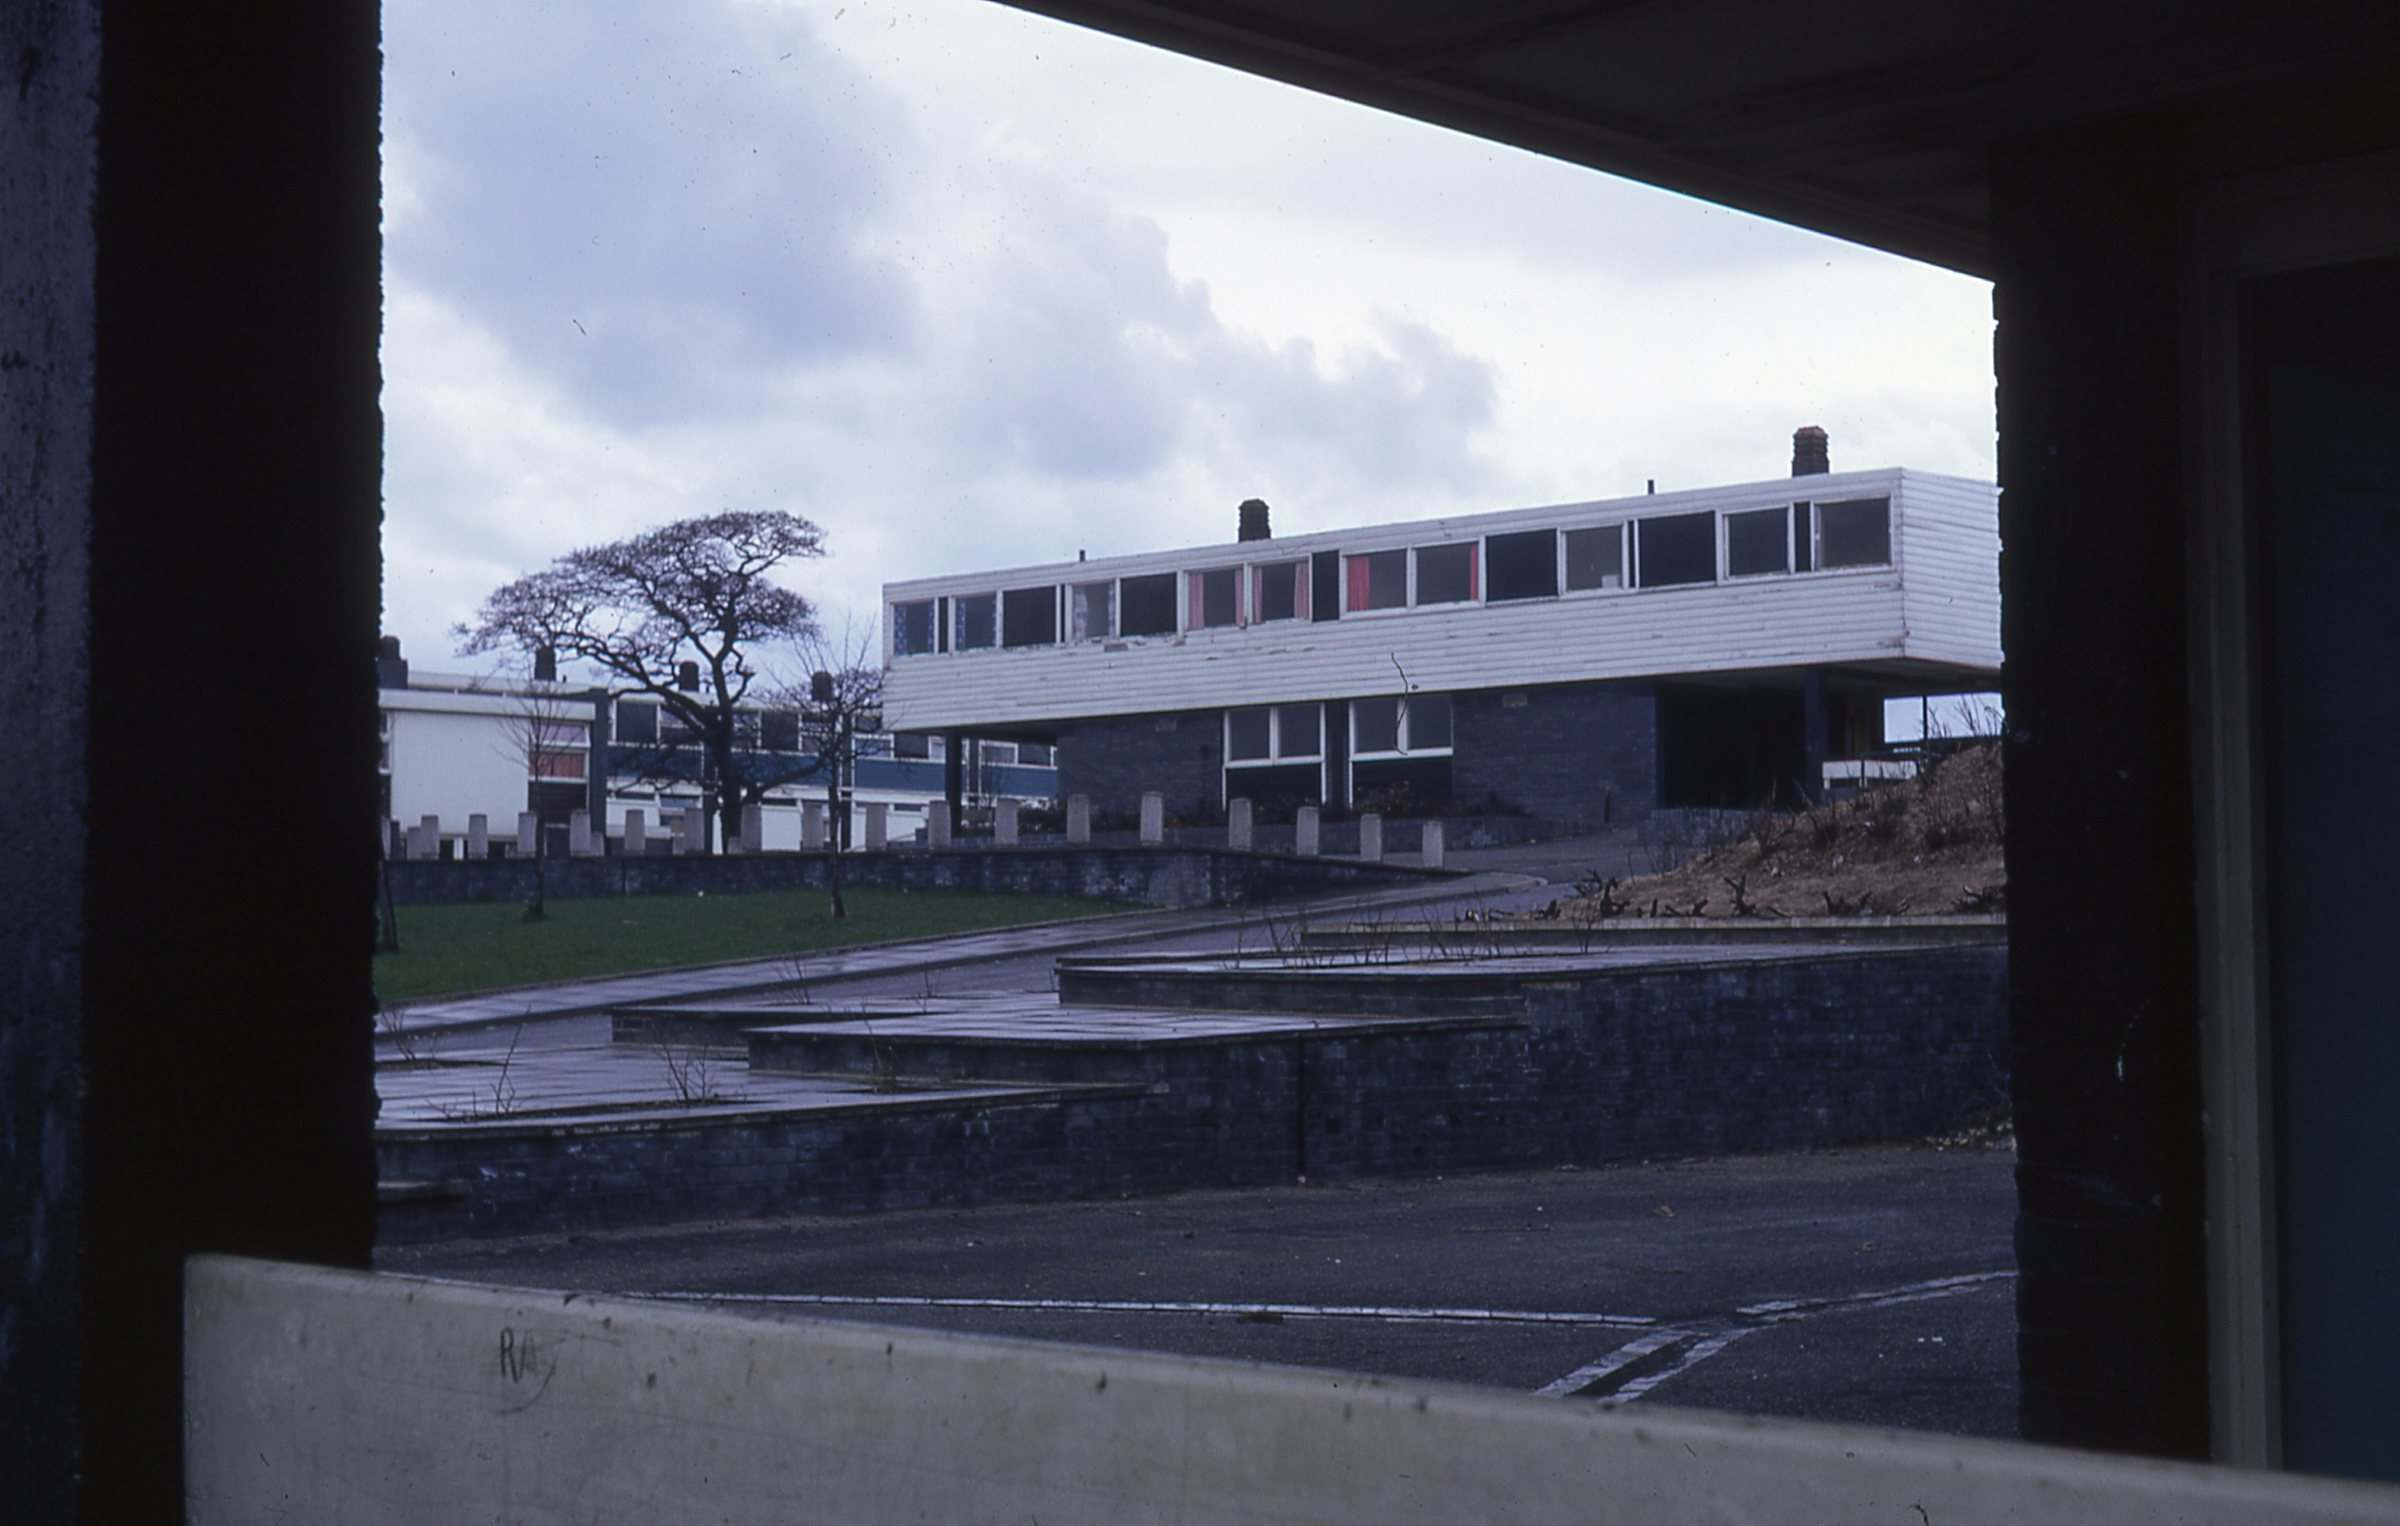 Housing designed by architect Victor Pasmore around 1970 in Peterlee New Town 2